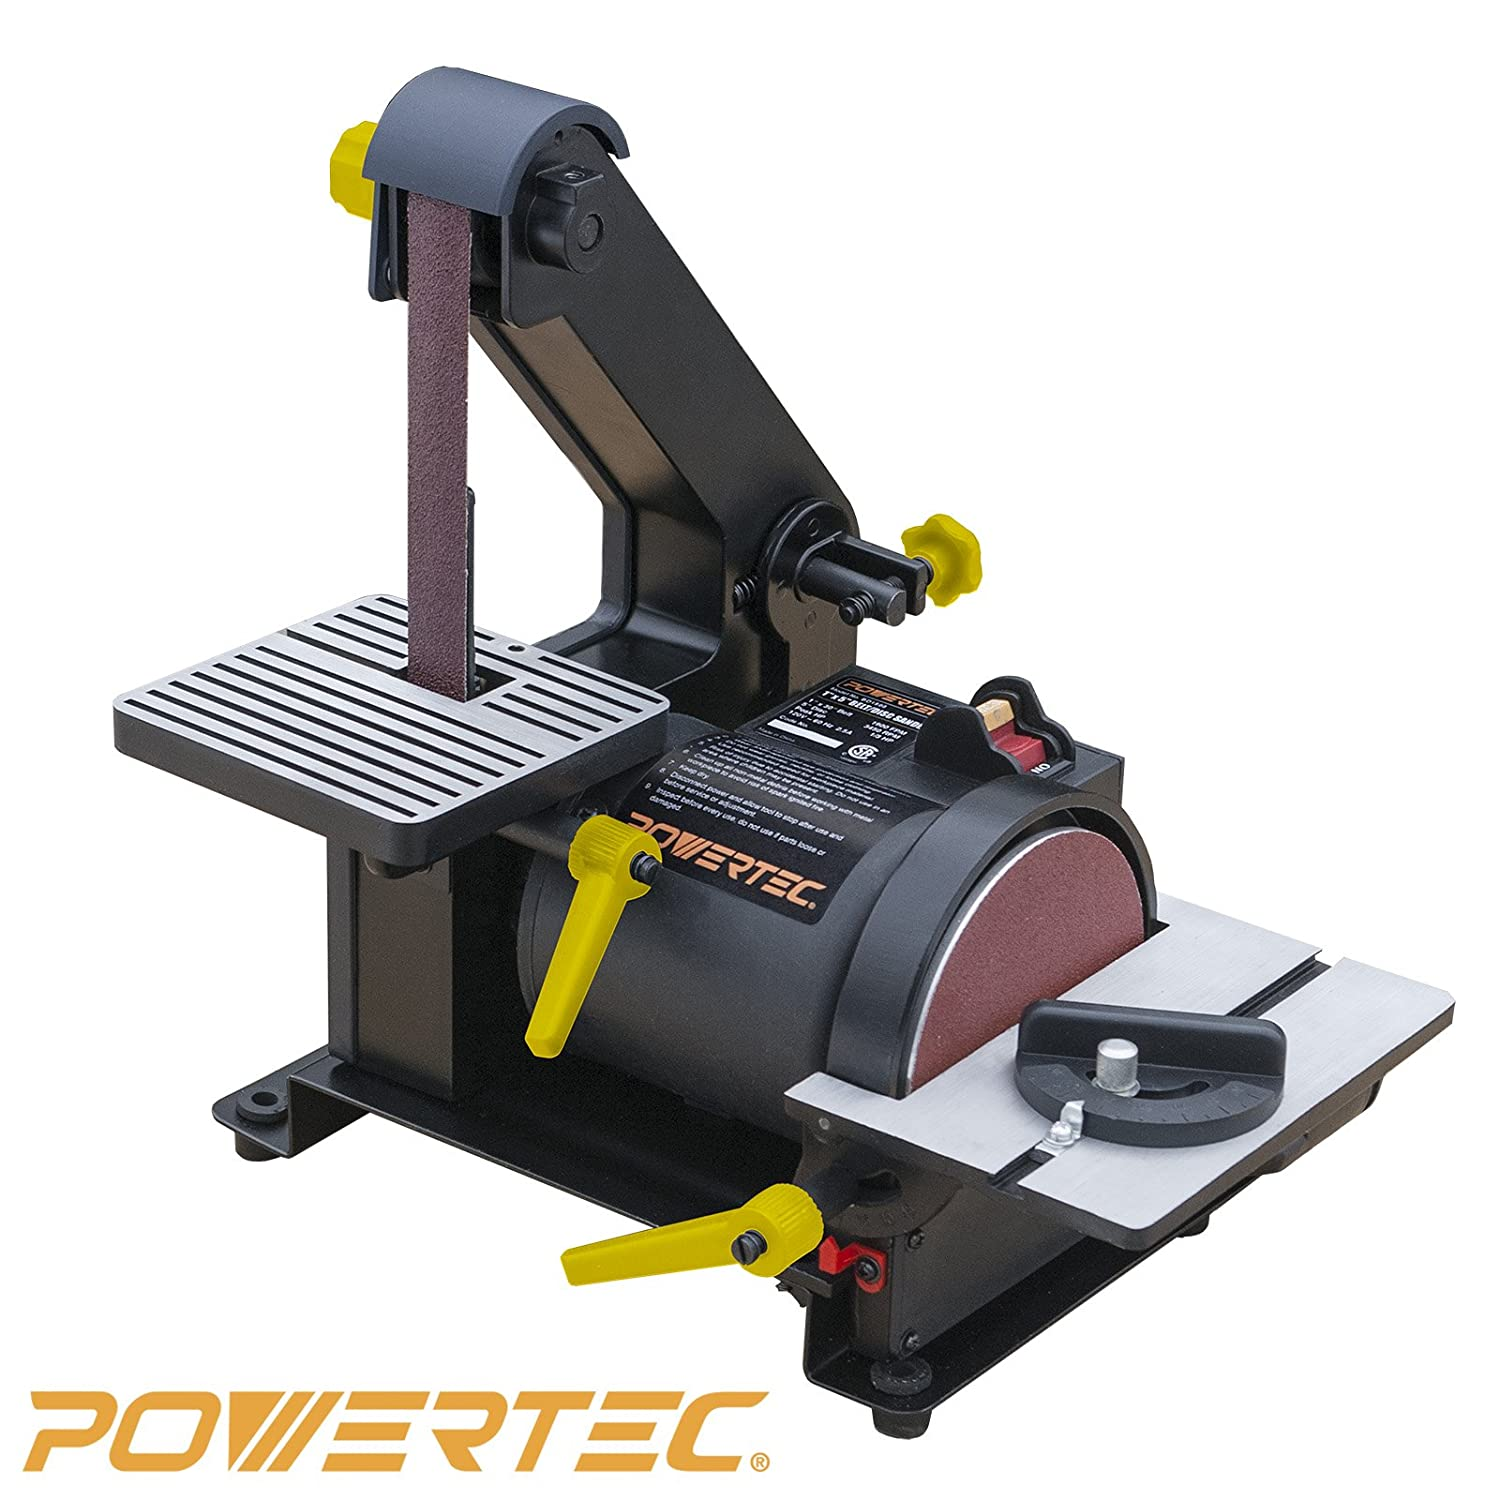 POWERTEC BD1500 Wood Working Belt Disc Sander REVIEW 2018